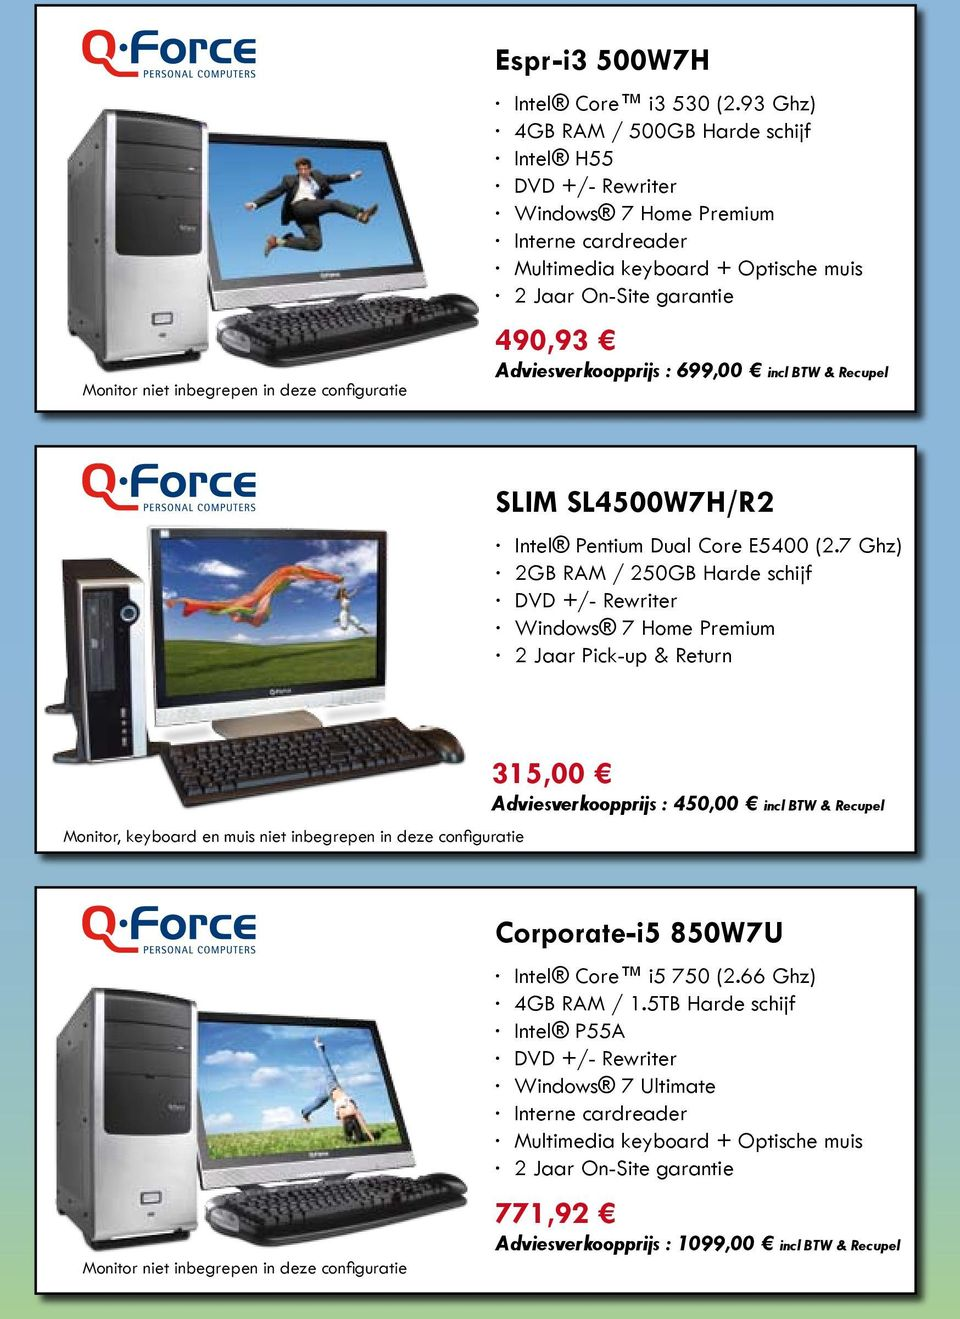 699,00 incl BTW & Recupel SLIM SL4500W7H/R2 Intel Pentium Dual Core E5400 (2.